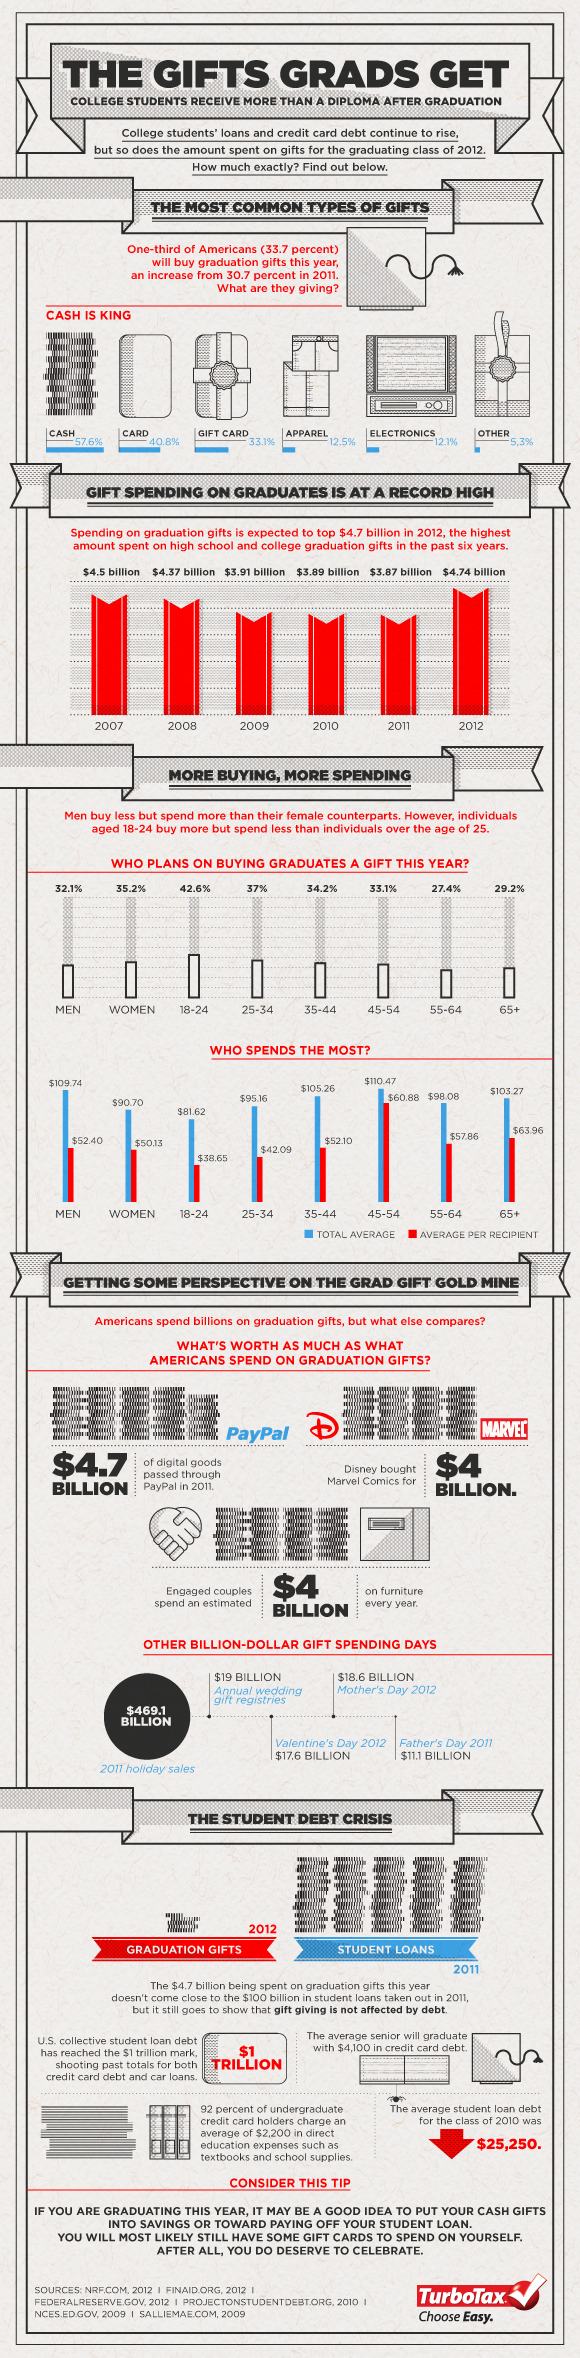 Infographic: College Grads and Gifts That Keep Giving